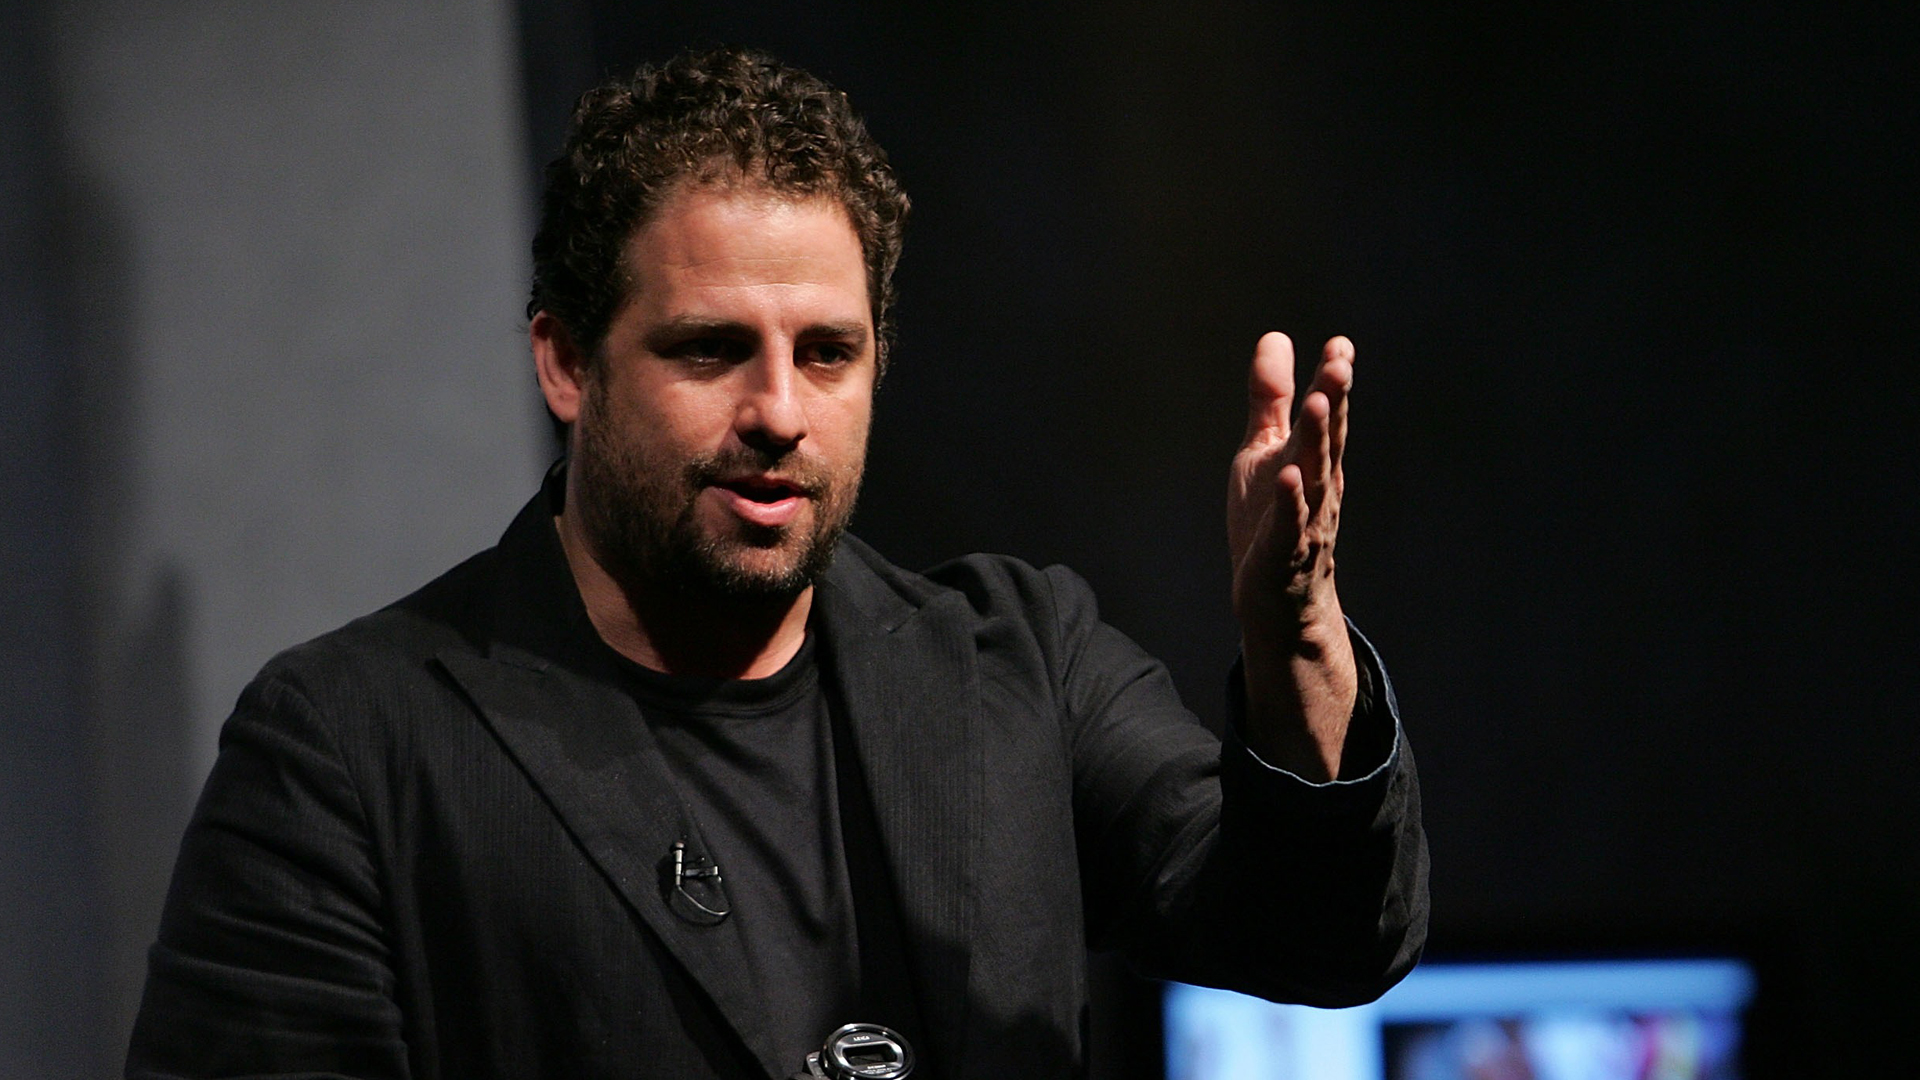 """Director Brett Ratner speaks at the launch of Panasonic's """"Living In High Definition"""" event at the Altman building on Aug. 1, 2007, in New York City. (Credit: Bryan Bedder/Getty Images)"""